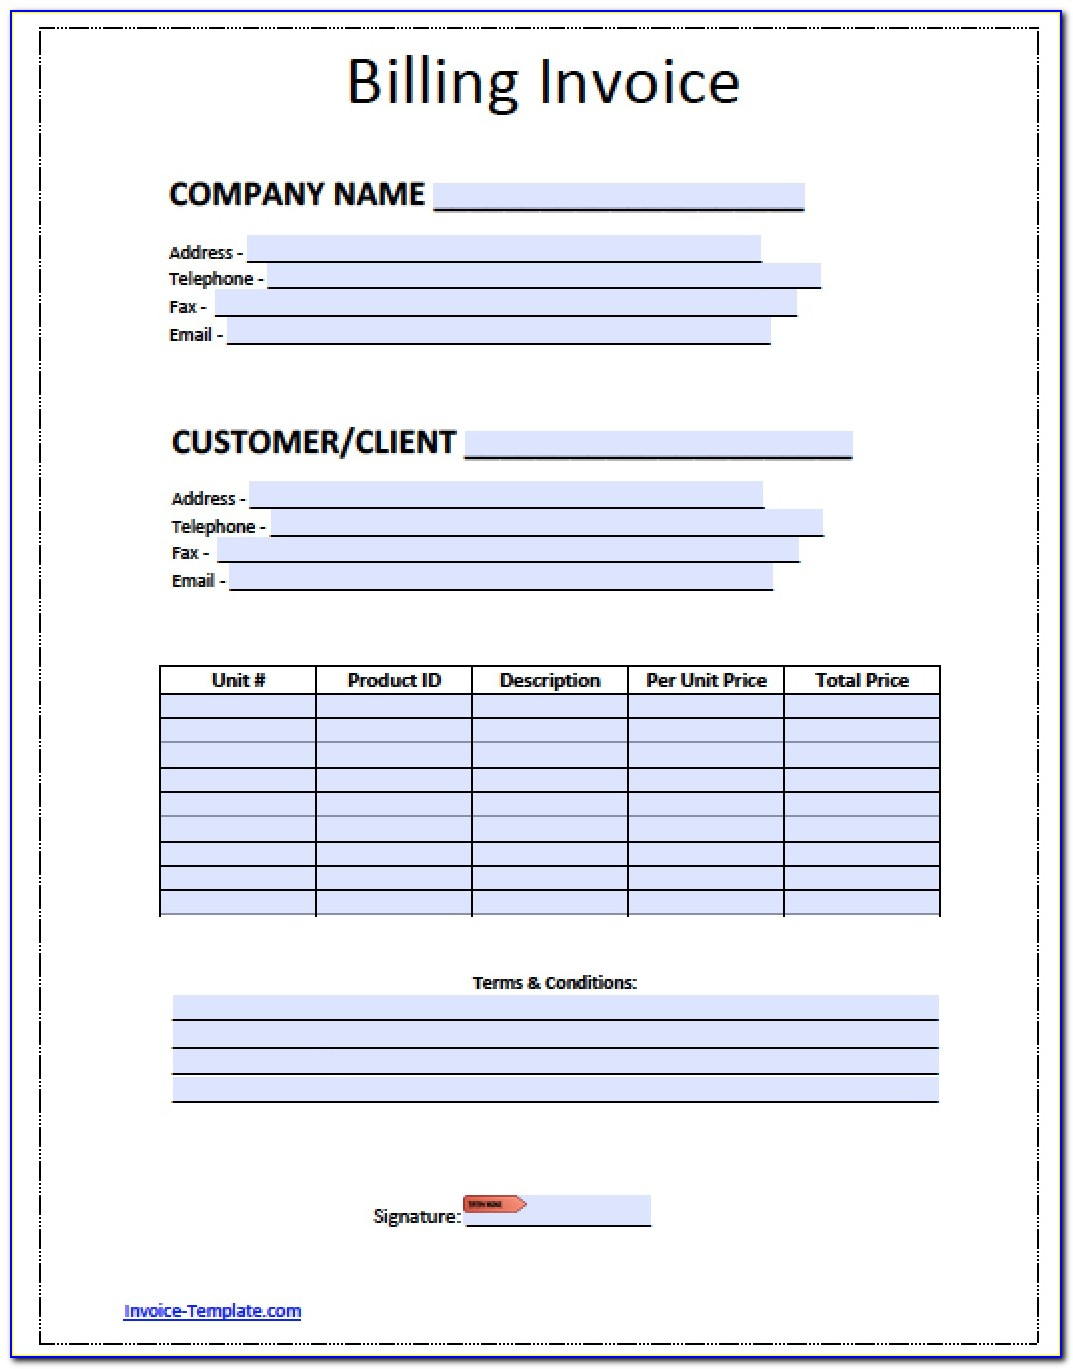 Invoice Examples For Designers